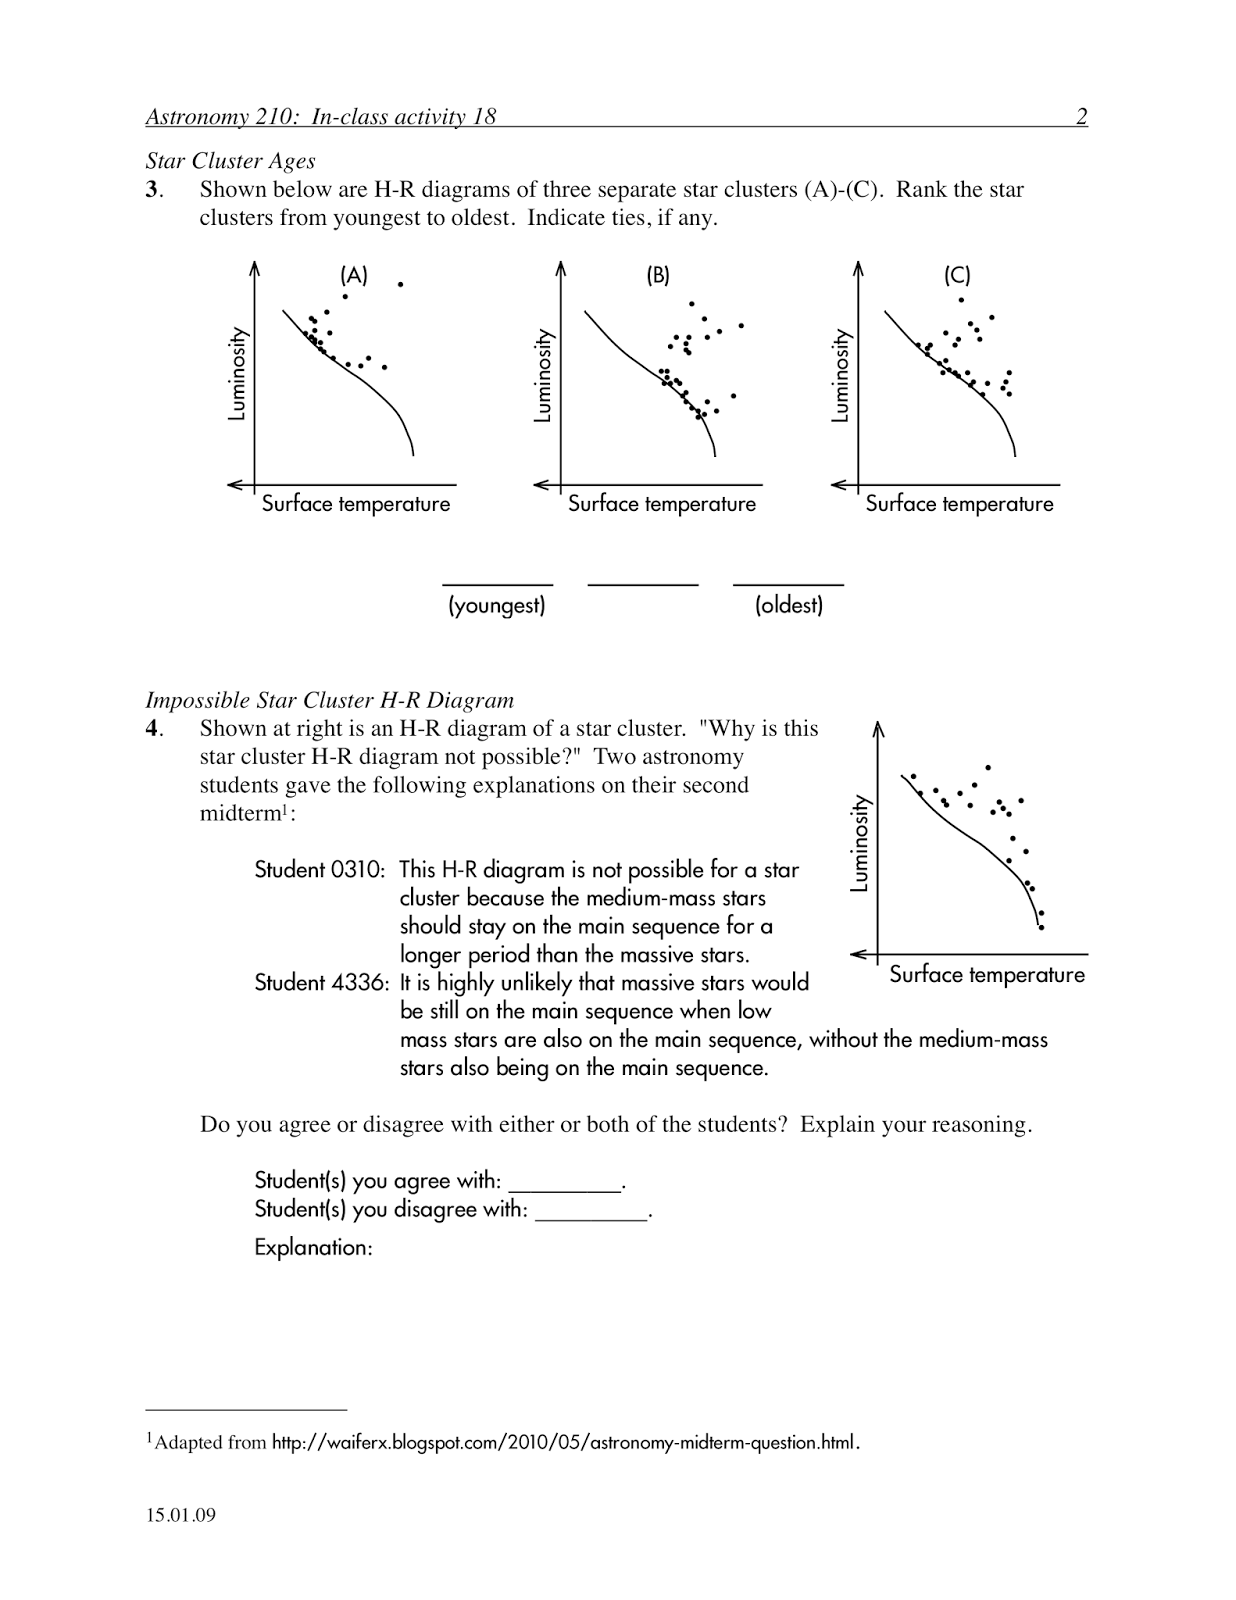 worksheet Stellar Evolution Worksheet p dogs blog boring but important astronomy in class activity on an worksheet comparing evolution rates of different mass stars and ranking relative star cluster ag